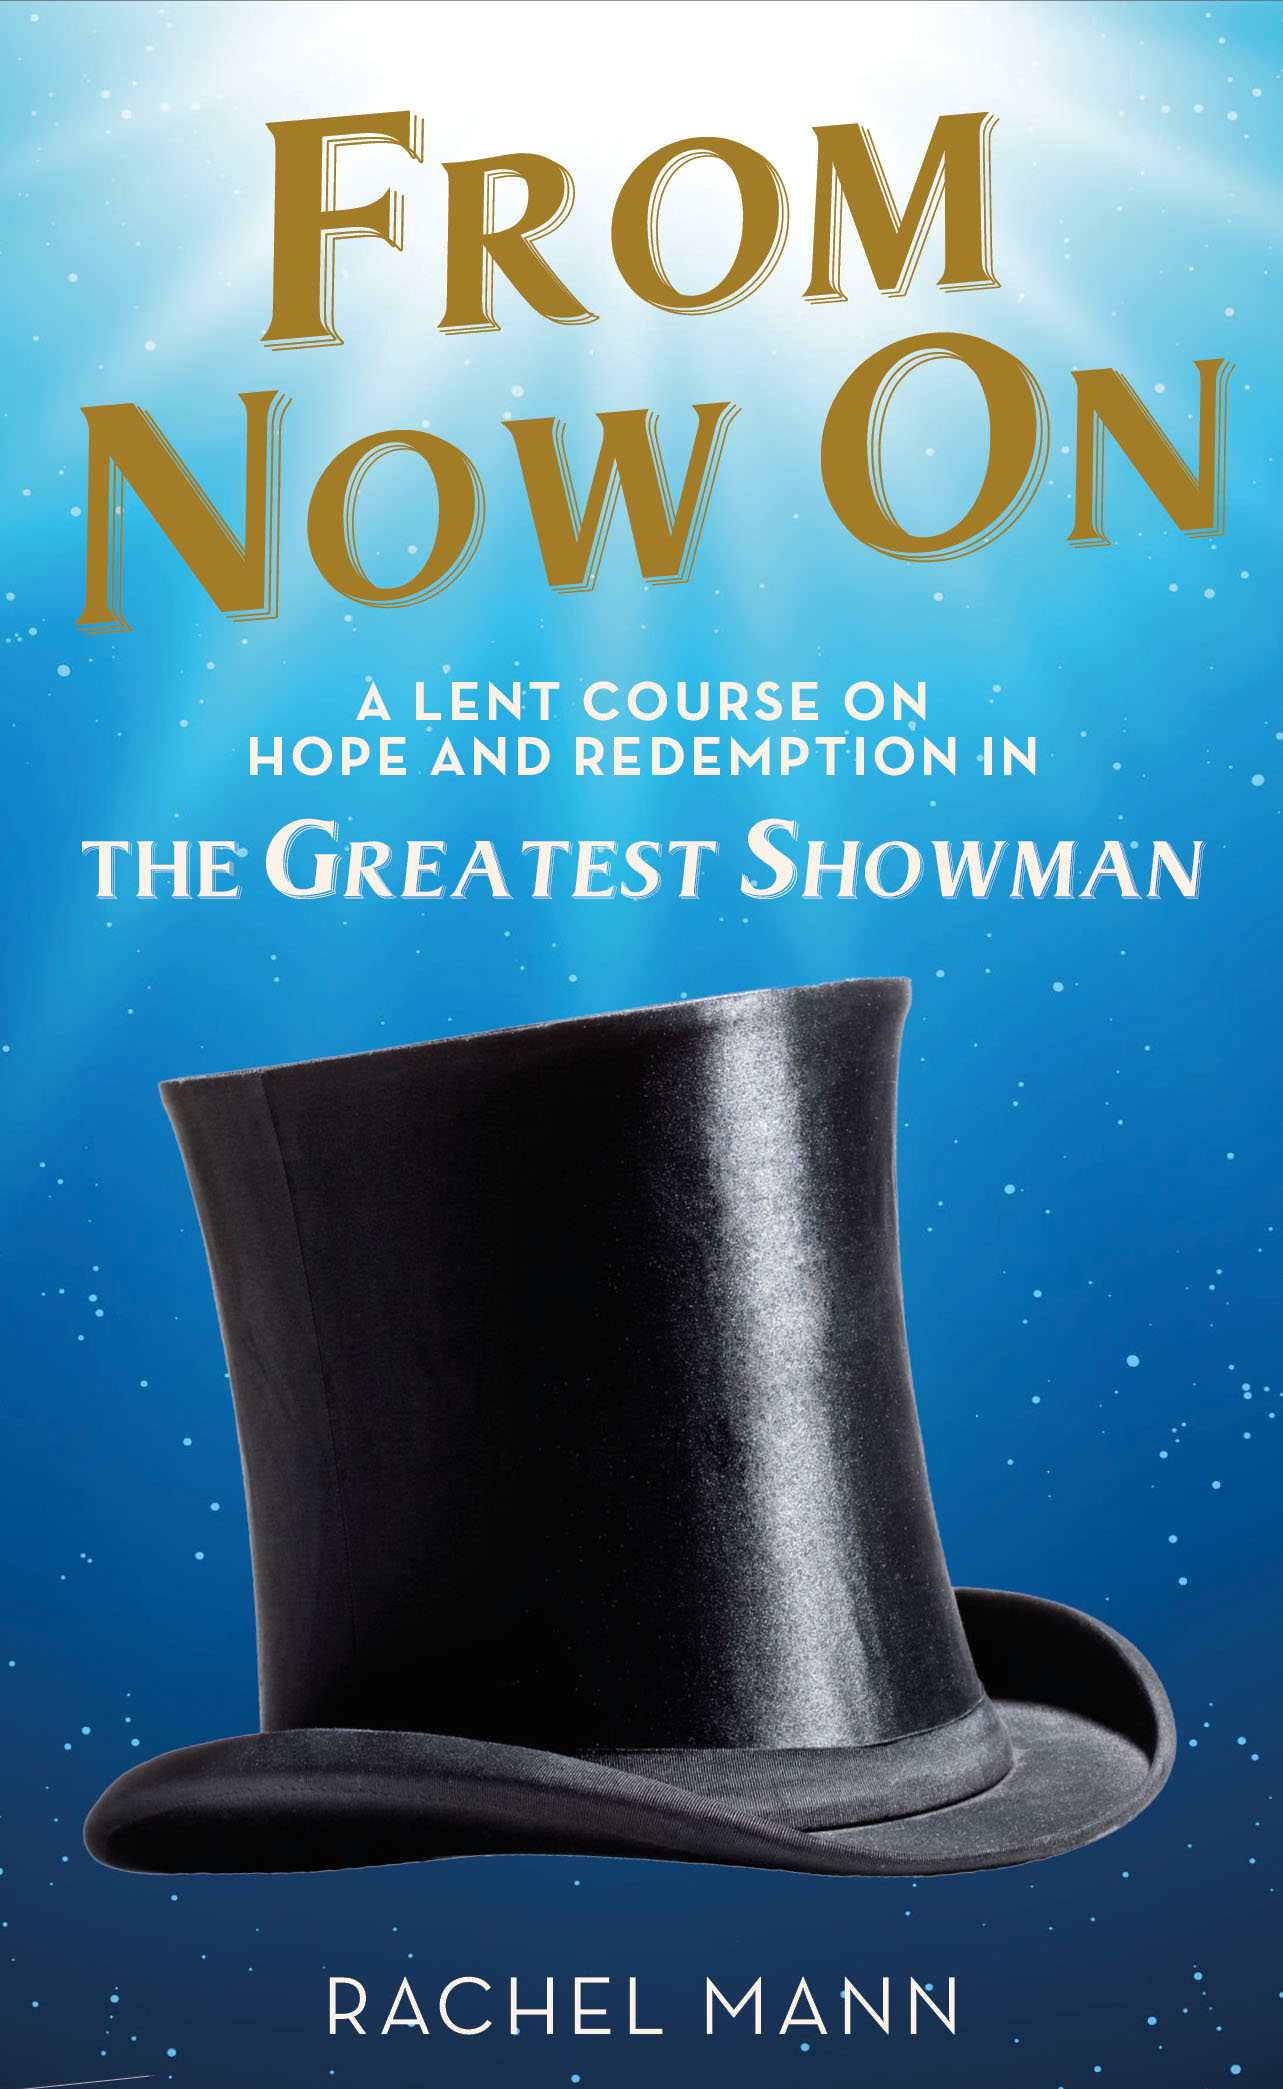 From Now On: A Lent Course on Hope and Redemption in The Greatest Showman